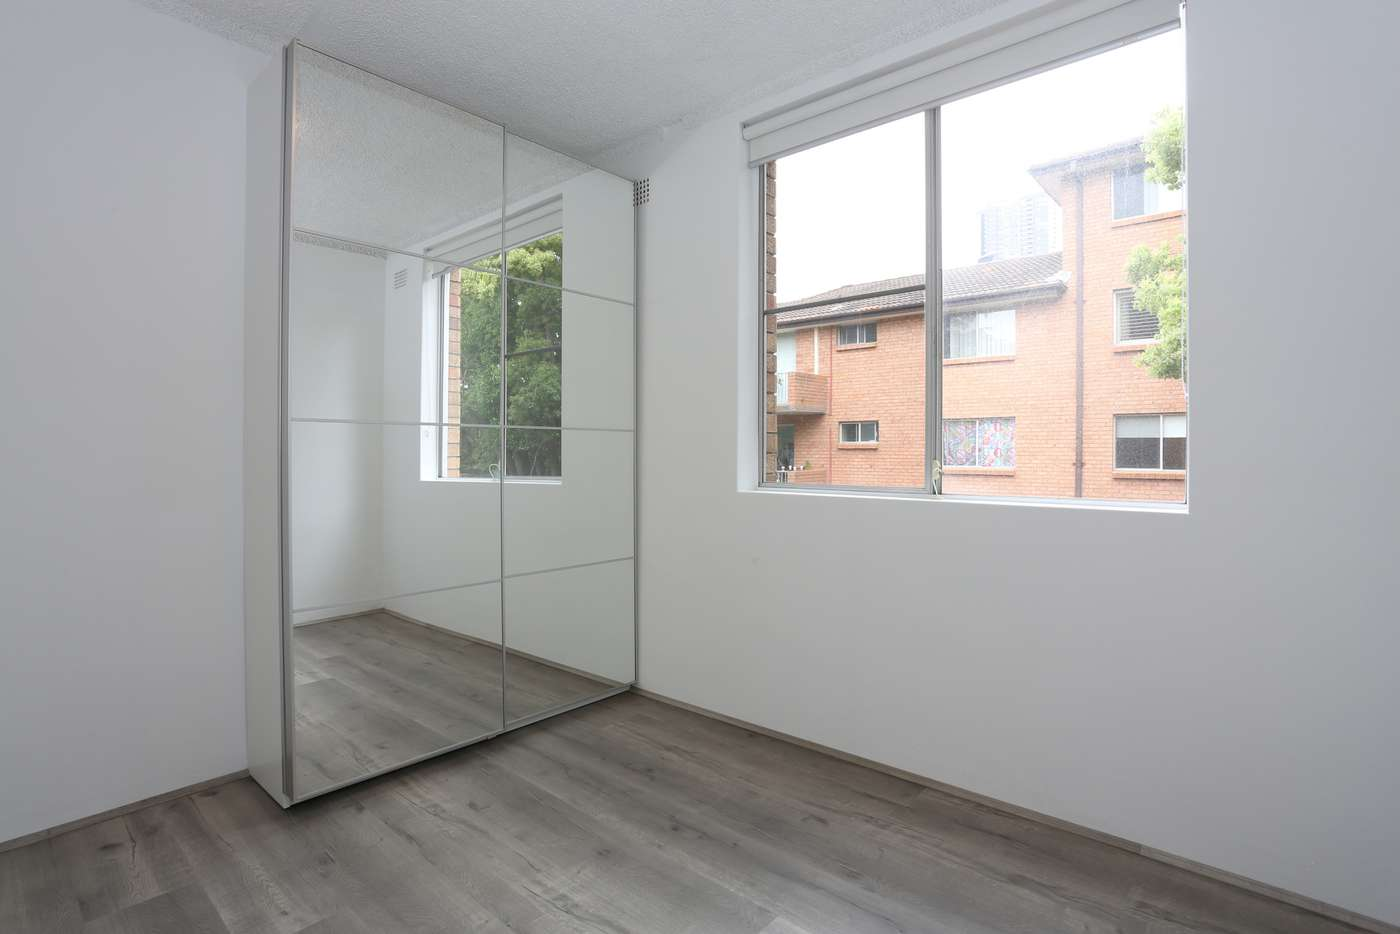 Main view of Homely apartment listing, 4/5 Thomas Street, Parramatta NSW 2150